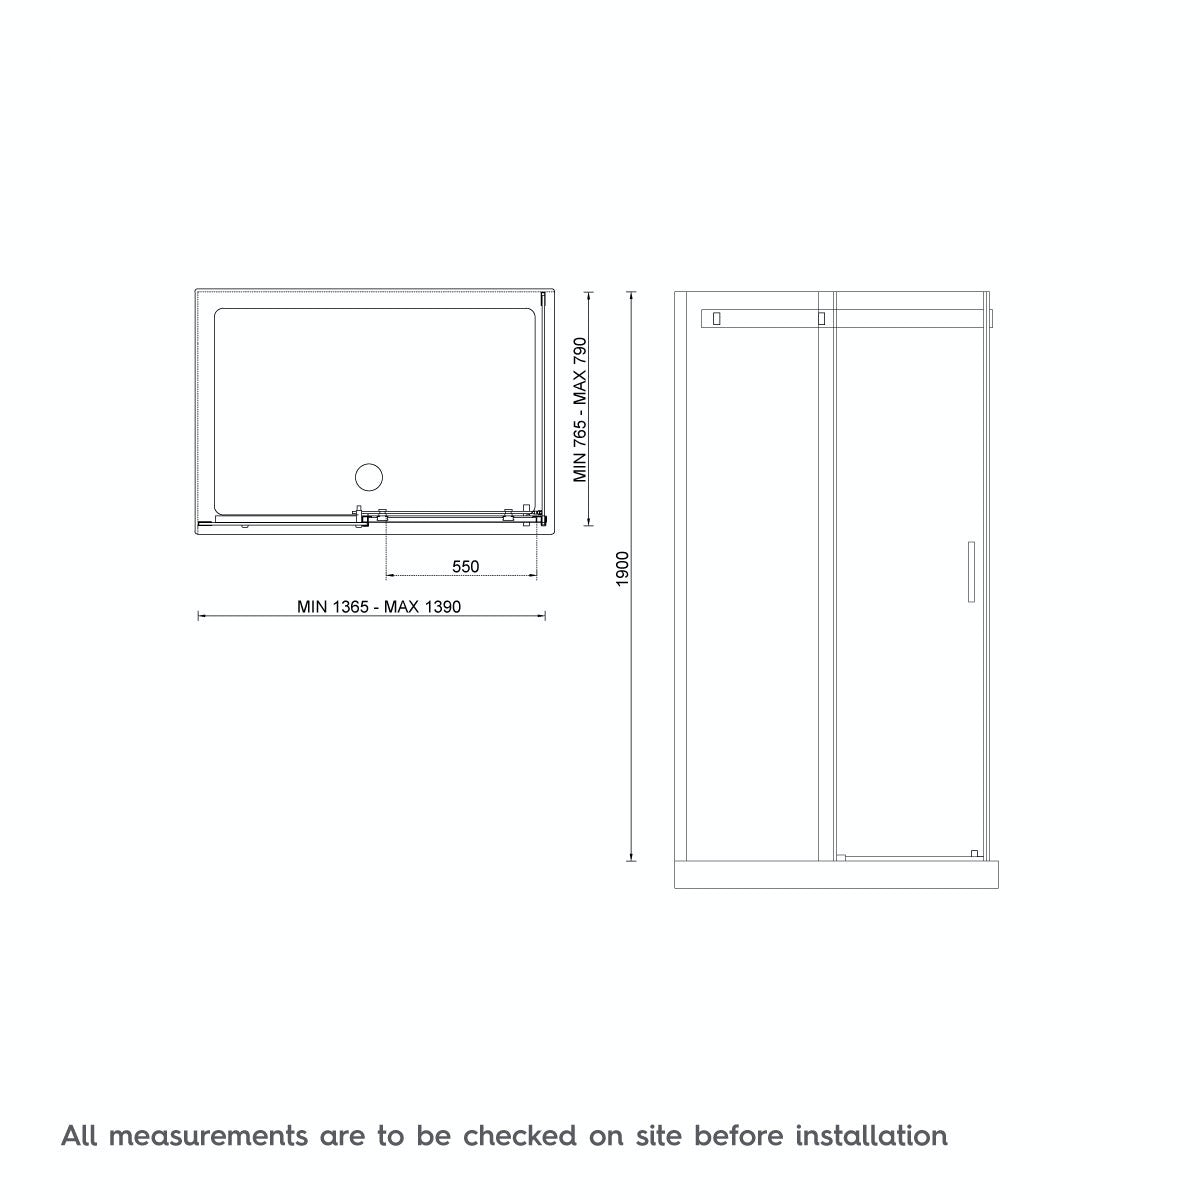 Dimensions for 1400 x 800